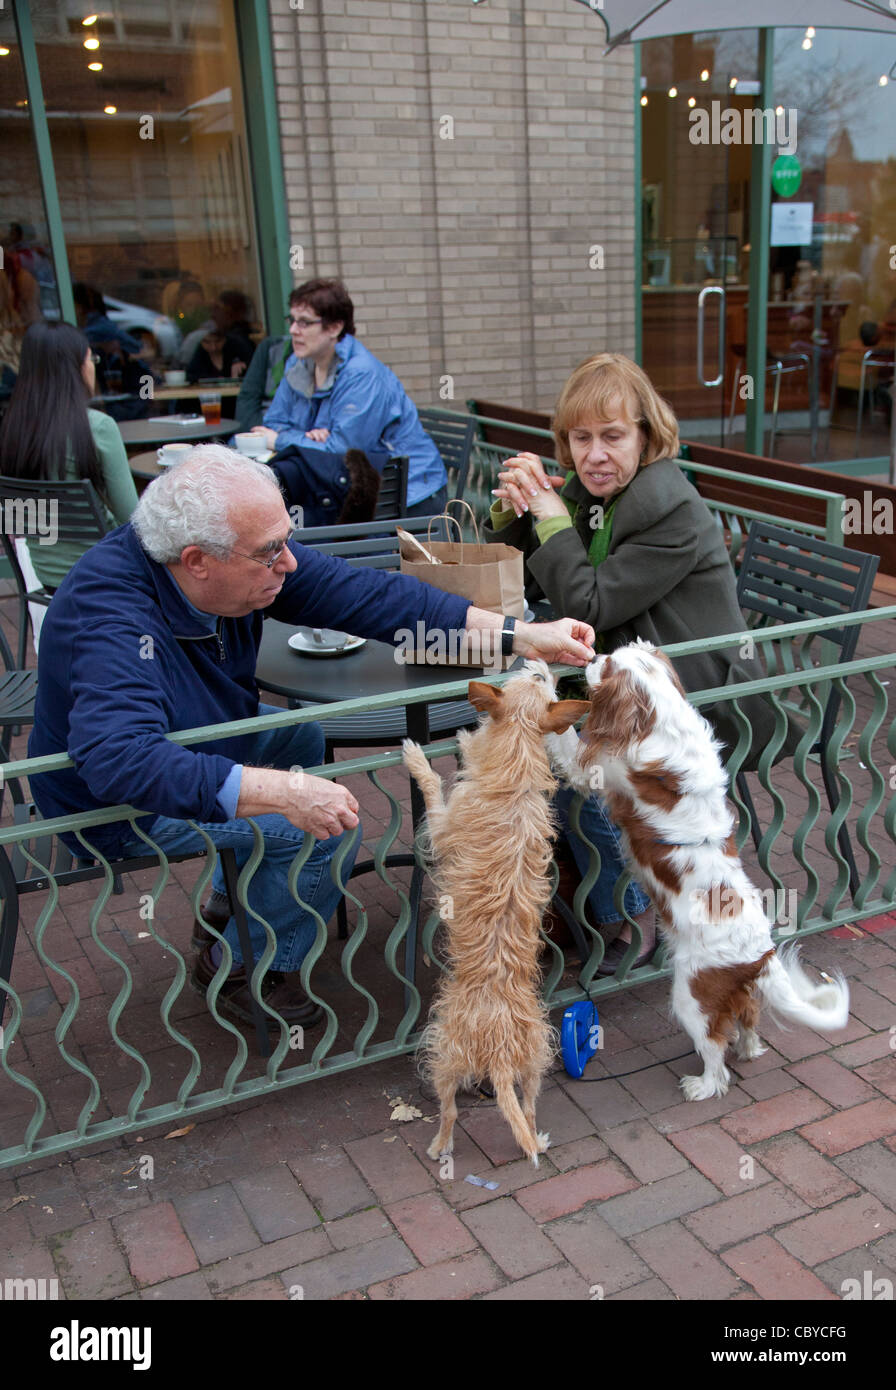 Washington, DC - Diners at a sidewalk cafe feed dogs outside the cafe's fence. - Stock Image